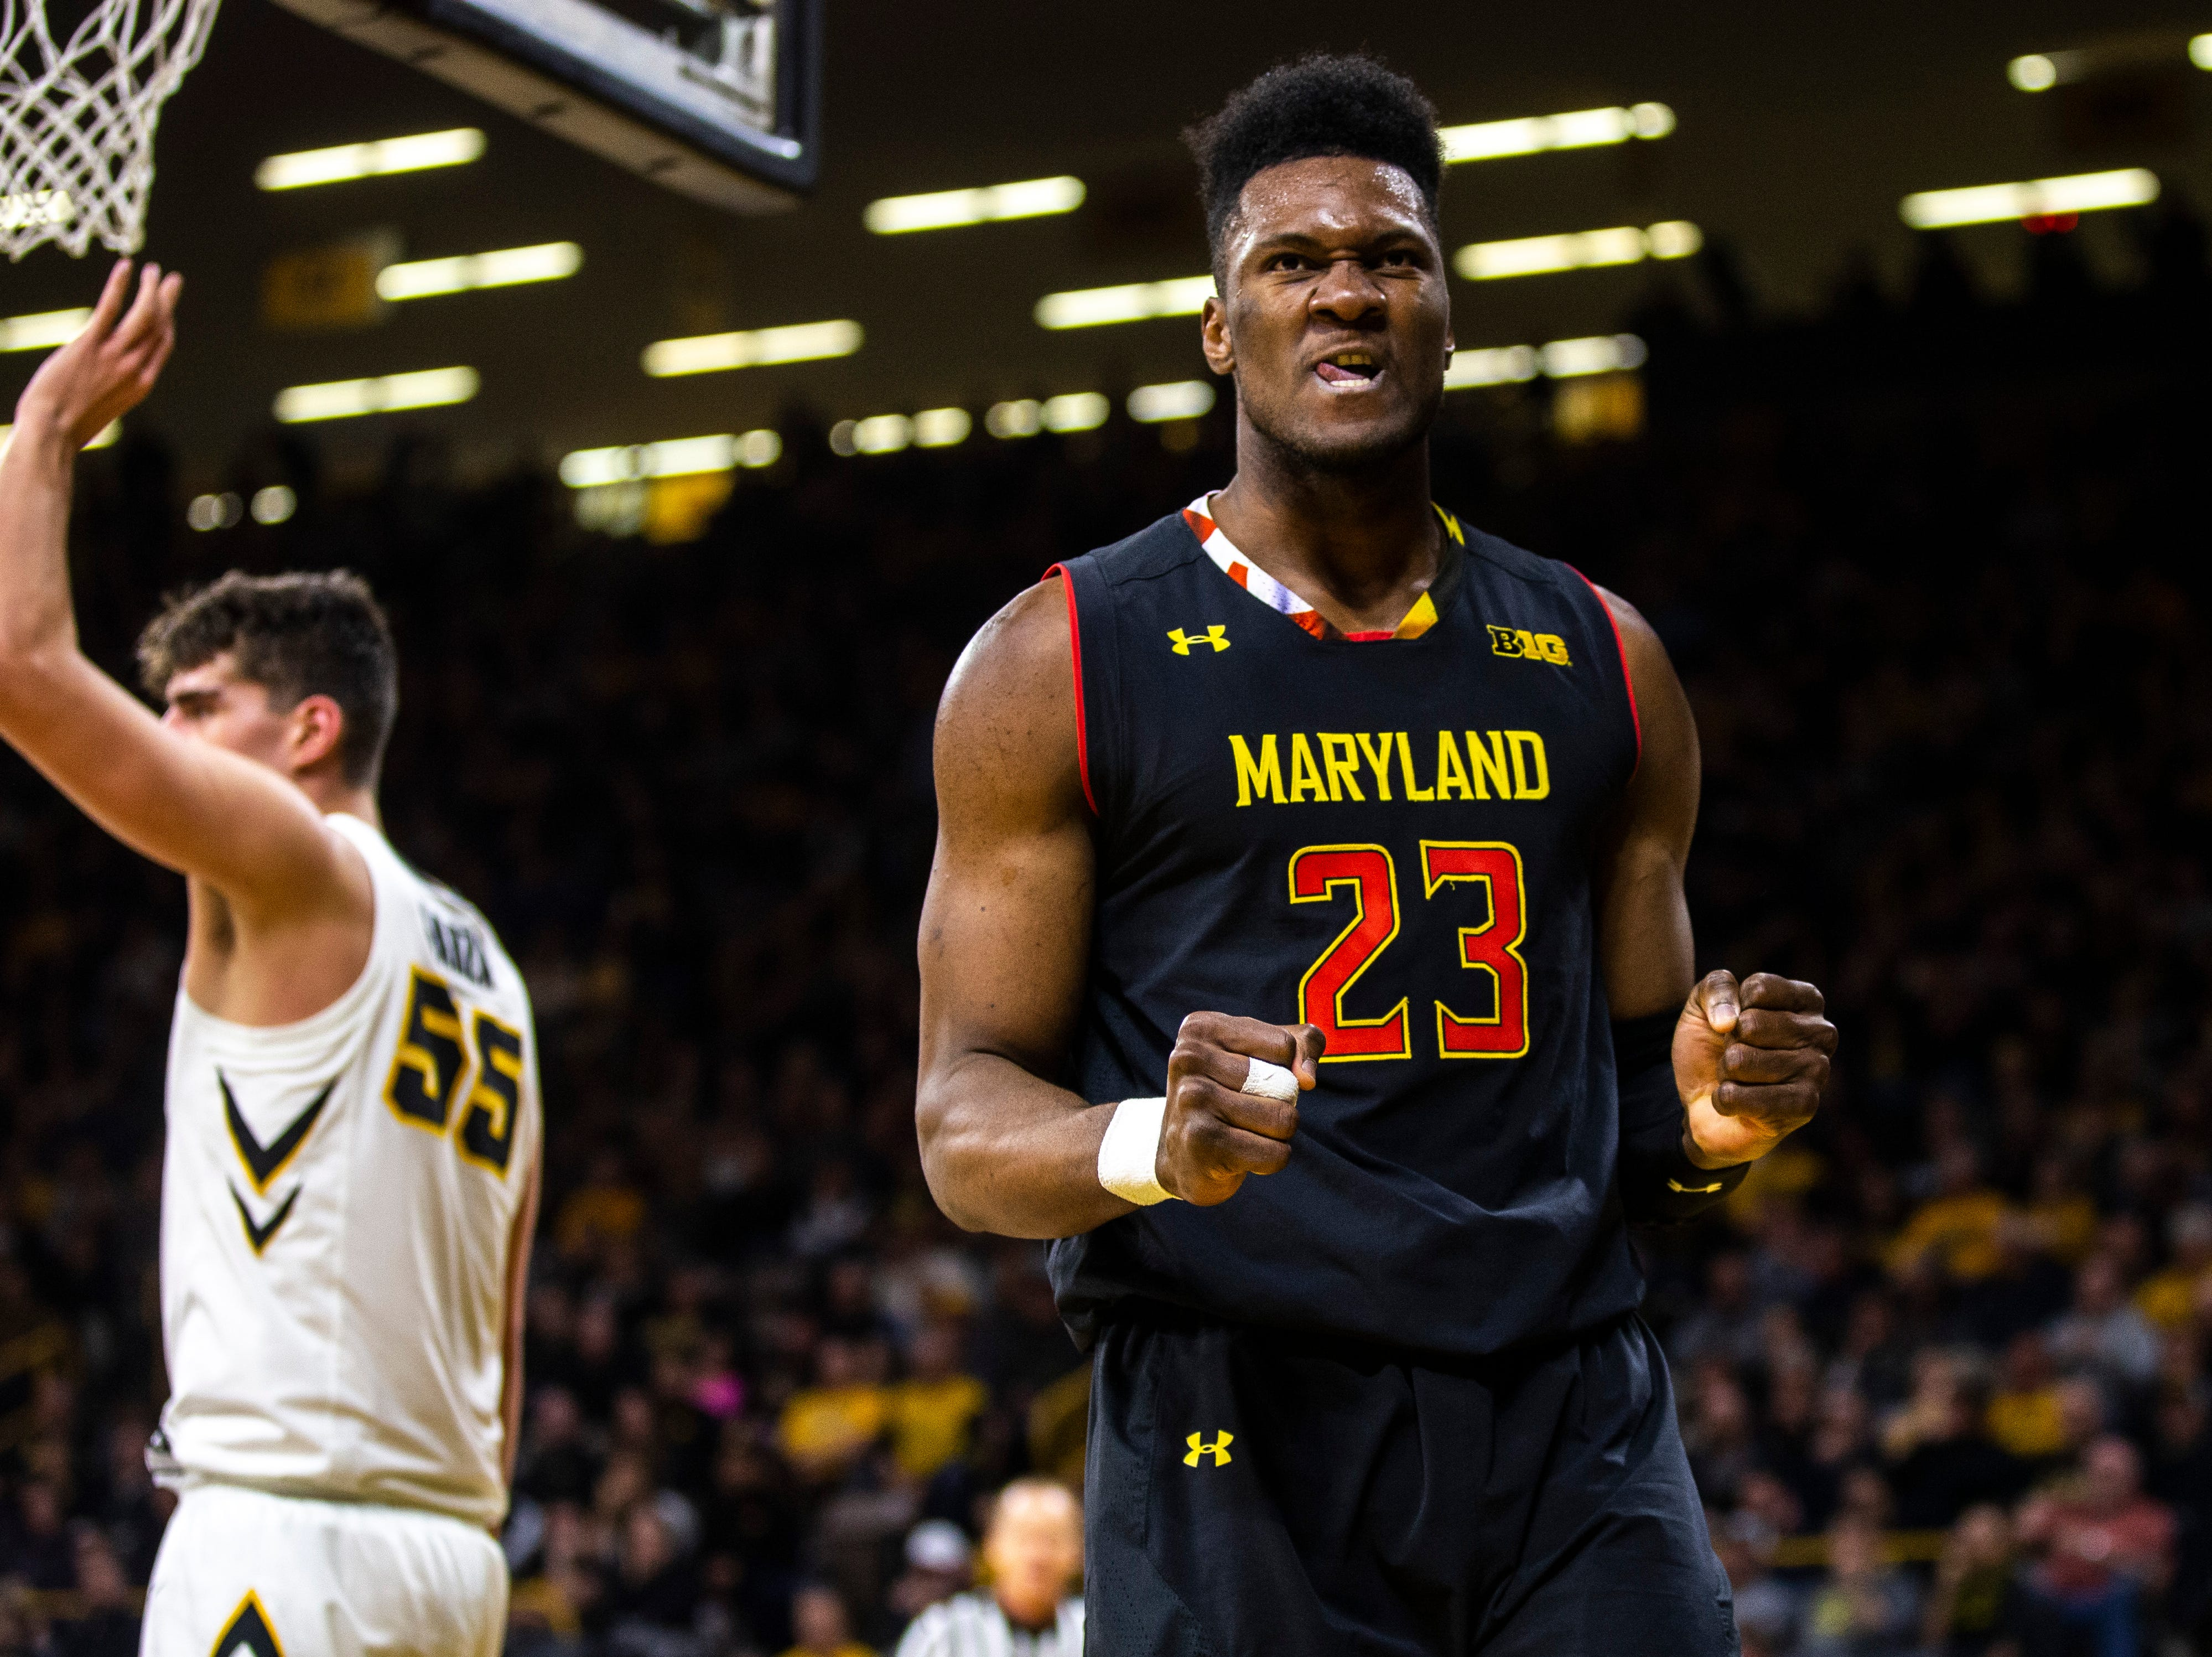 Maryland forward Bruno Fernando (23) reacts after drawing a foul from Iowa center Luka Garza (55) during a NCAA Big Ten Conference men's basketball game on Tuesday, Feb. 19, 2019 at Carver-Hawkeye Arena in Iowa City, Iowa.